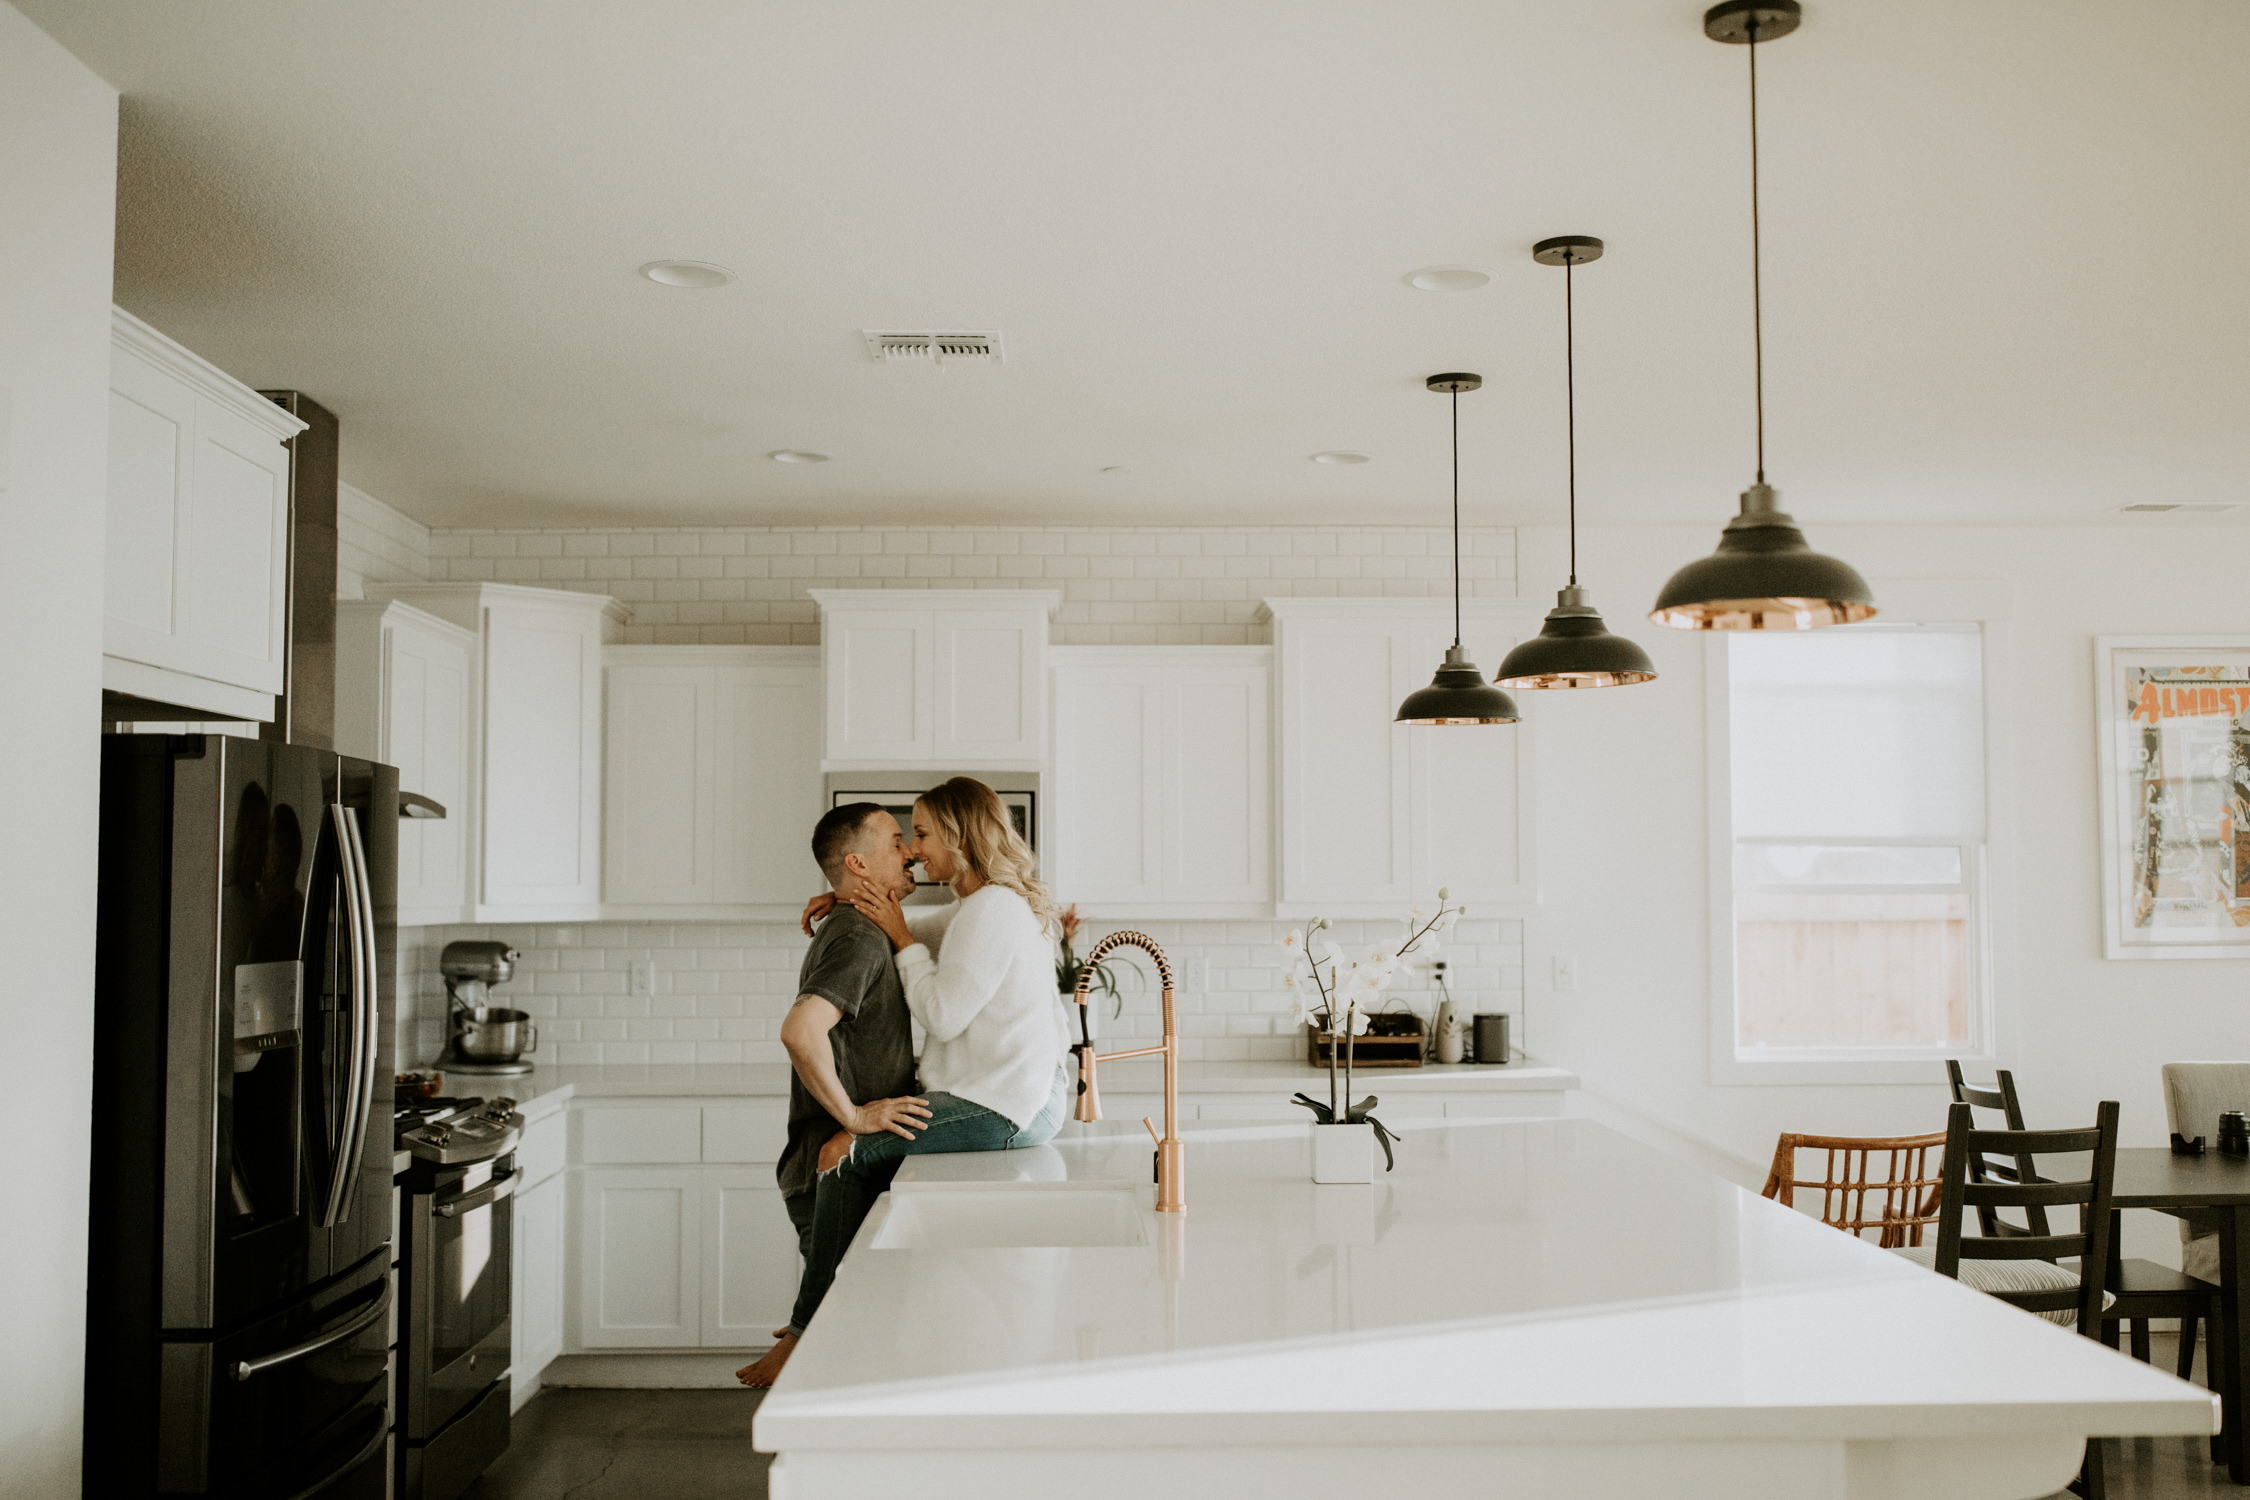 couple-intimate-in-home-session-northern-california-54.jpg